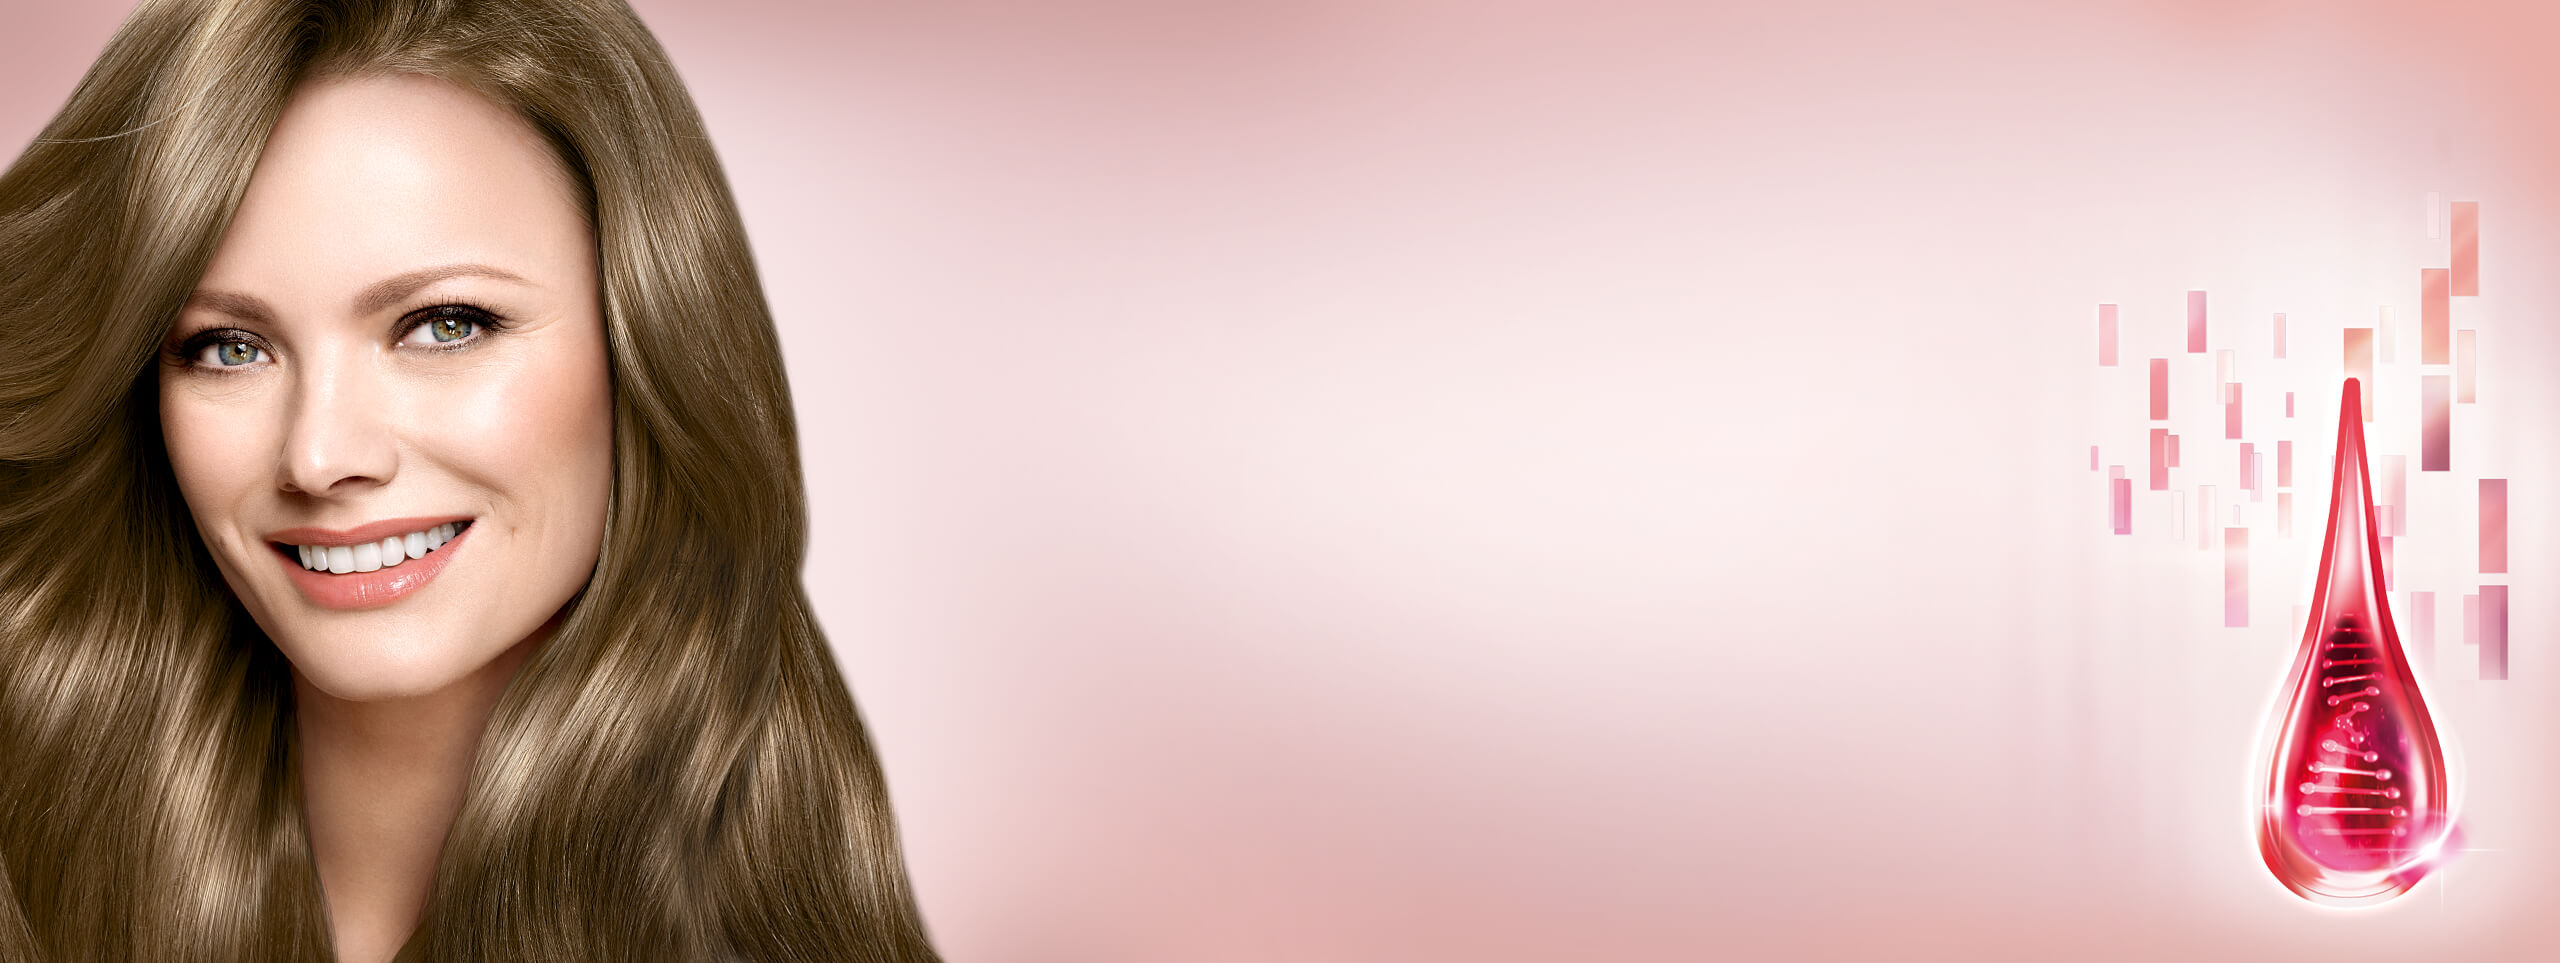 keratin_color_com_technology_2560x963